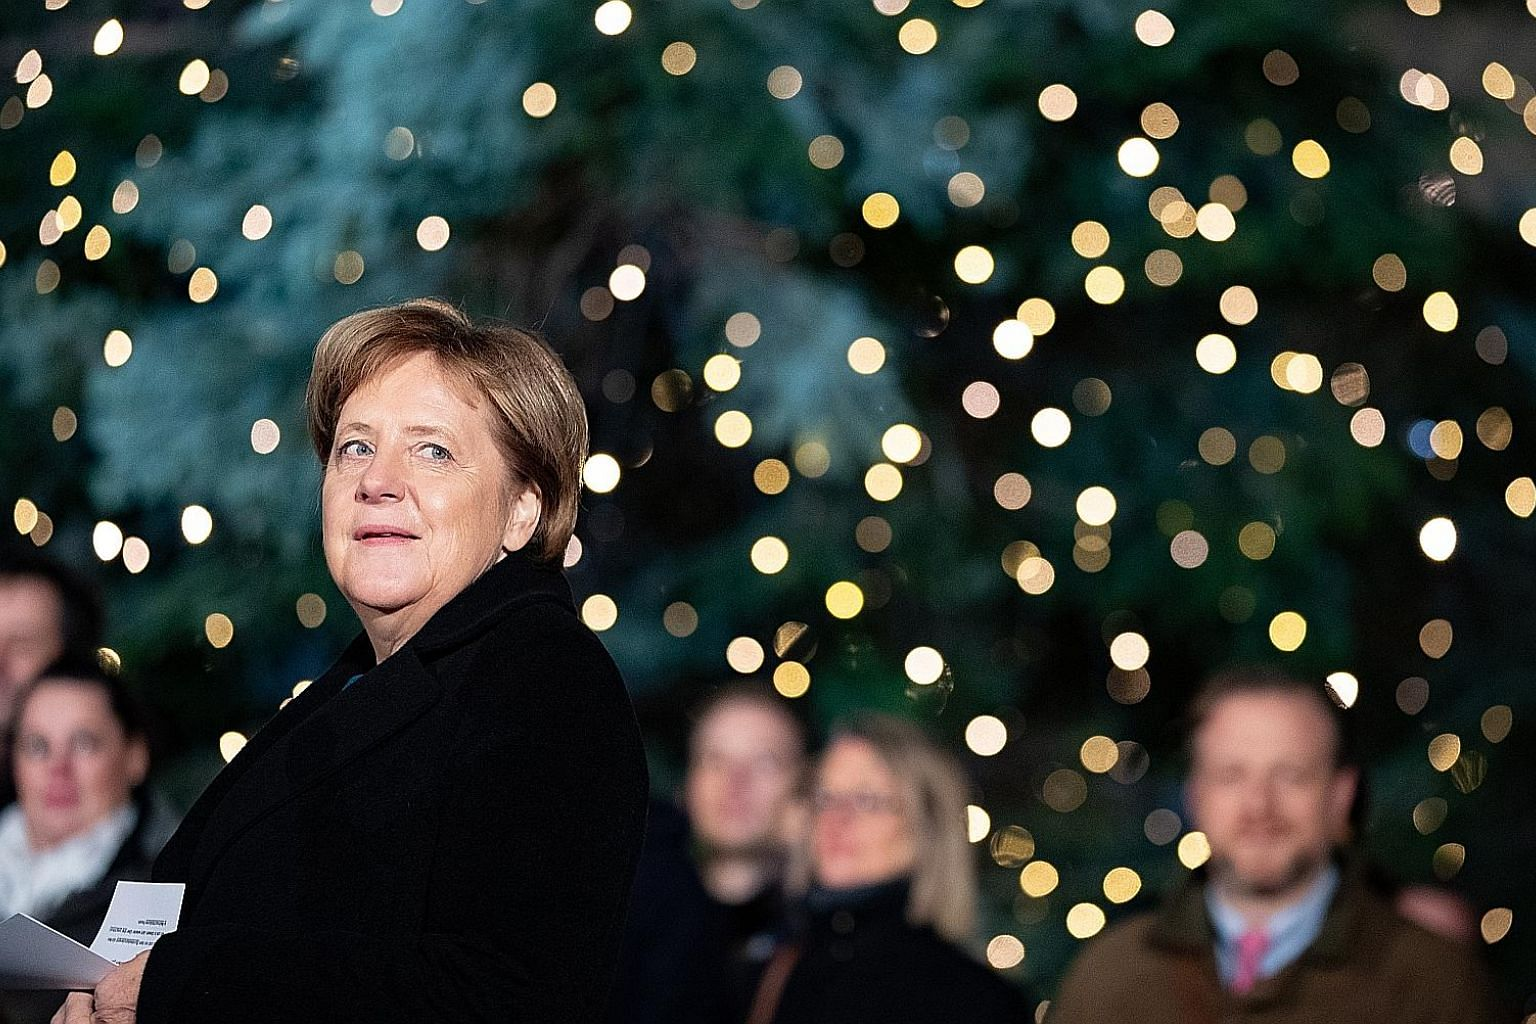 Efforts to find German Chancellor Angela Merkel's successor as leader of the Christian Democratic Union are ongoing, and delegates will elect their new chief at a party conference in Hamburg on Friday. Asians will be watching her successor's interest